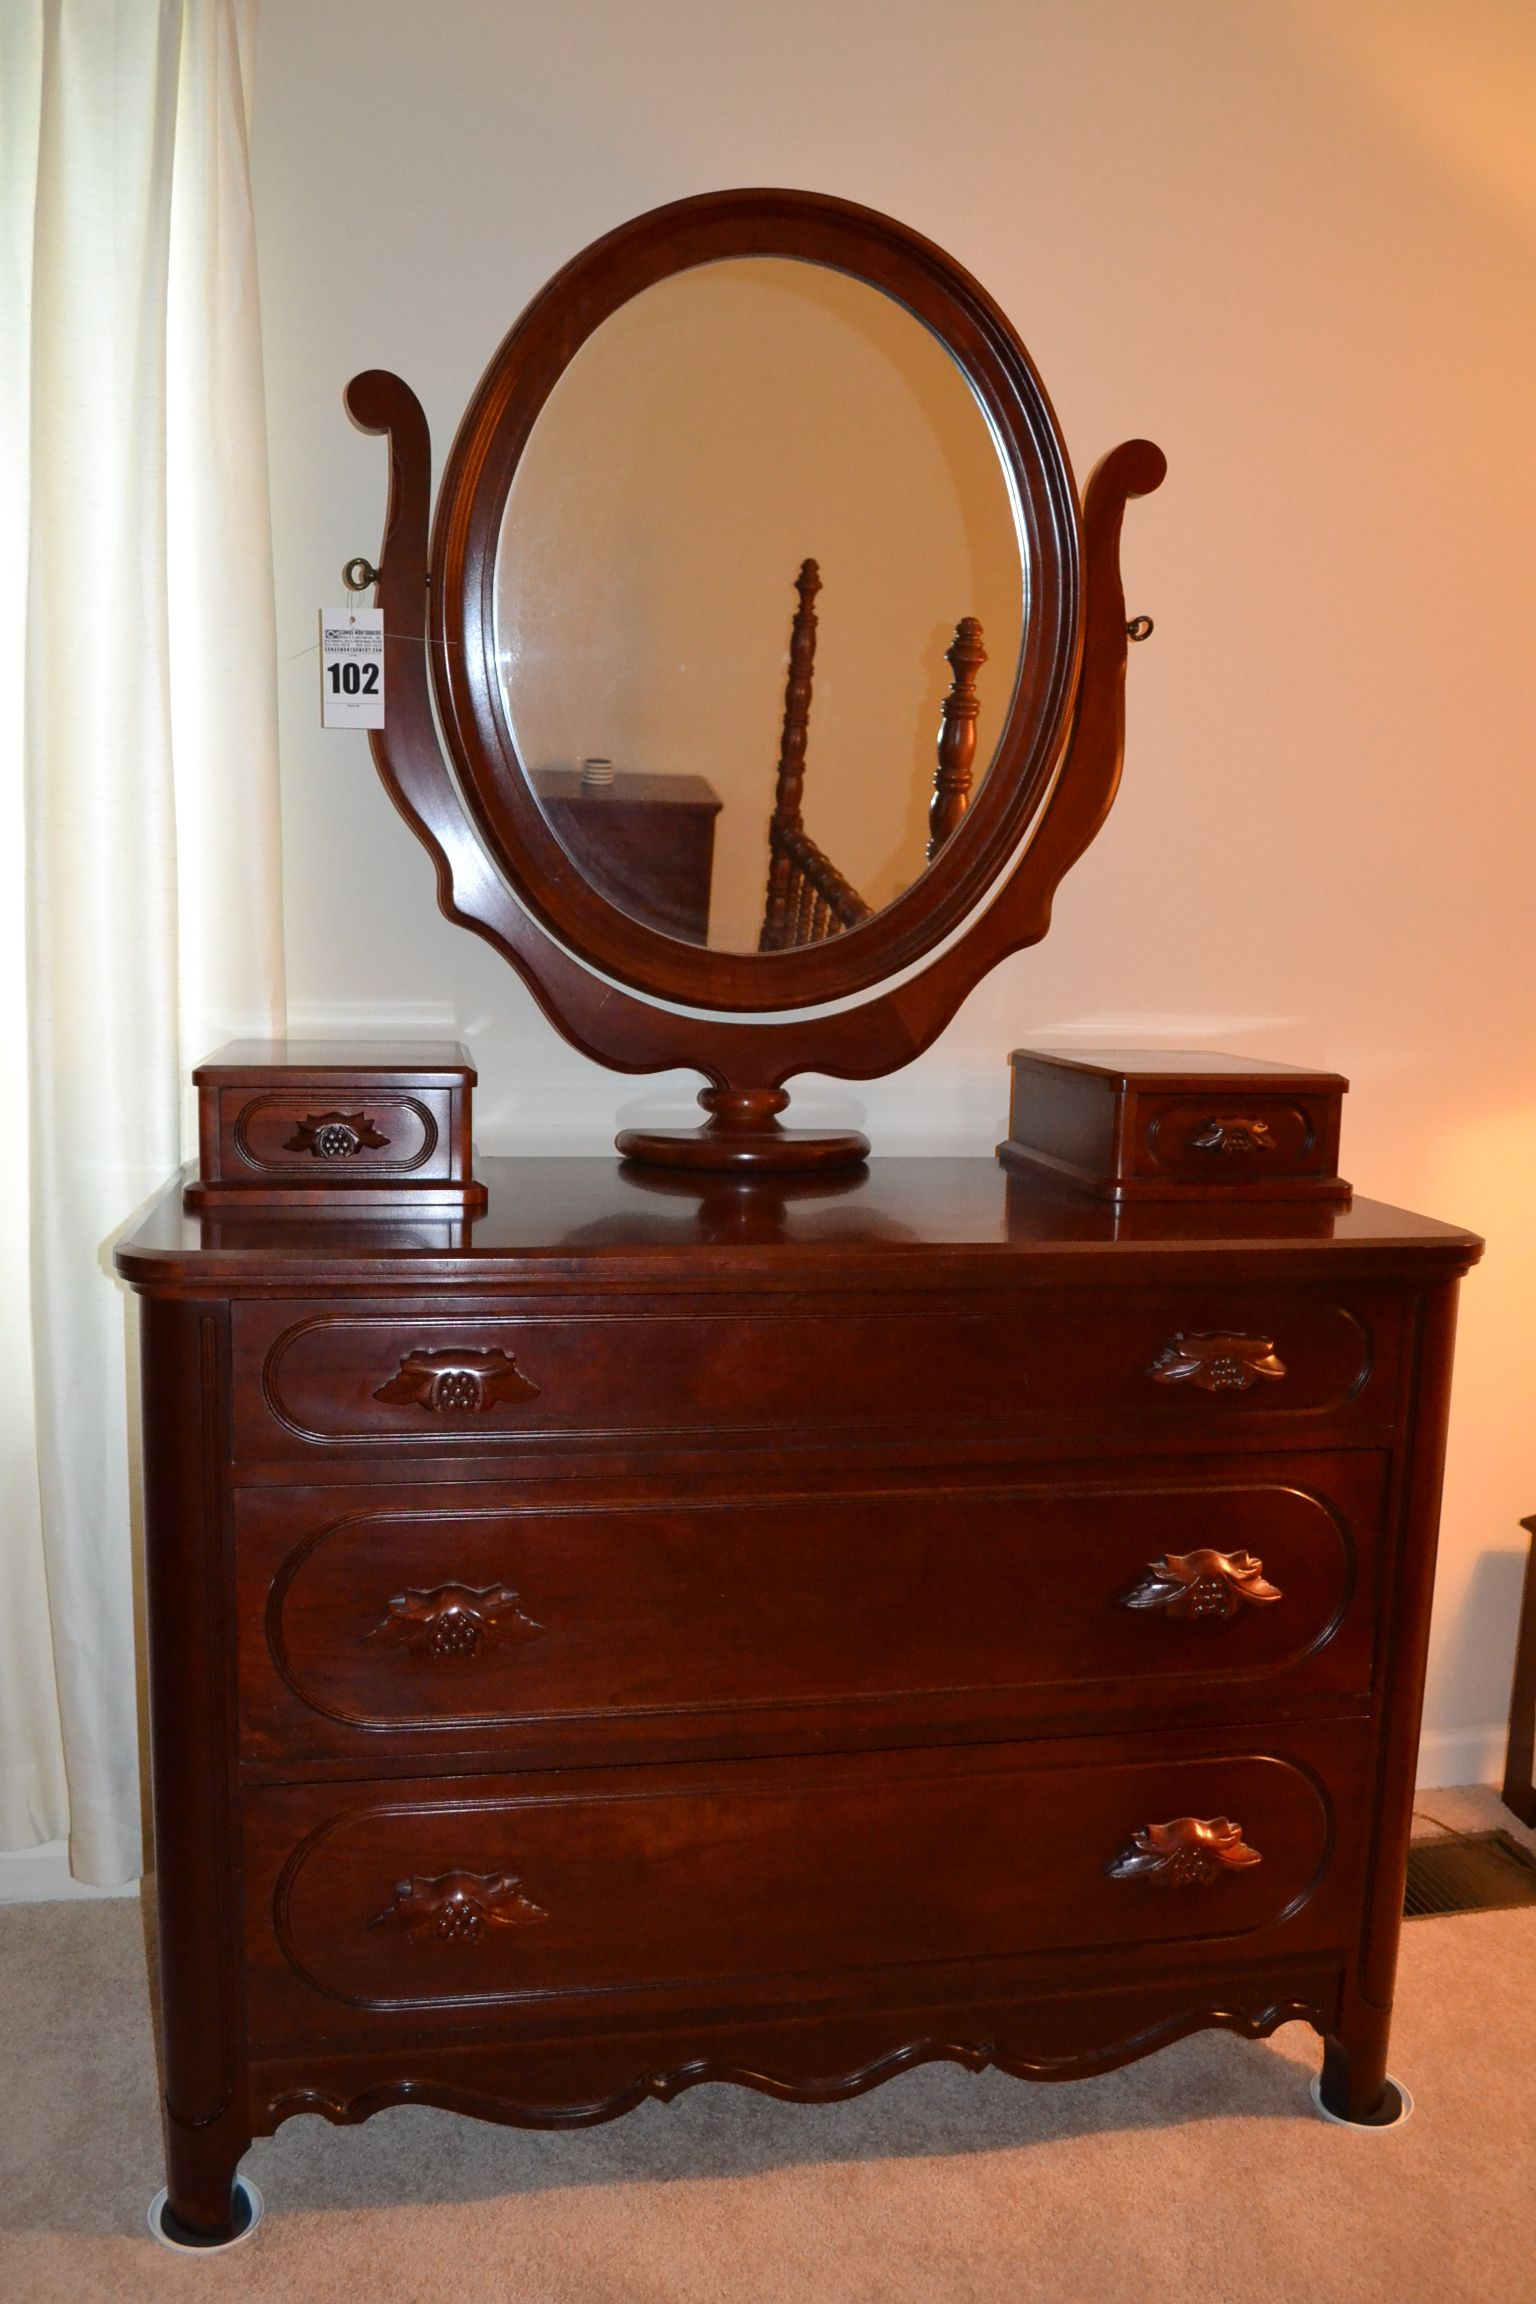 The Original Lillian Russell Collection Mirrored Dresser By Davis